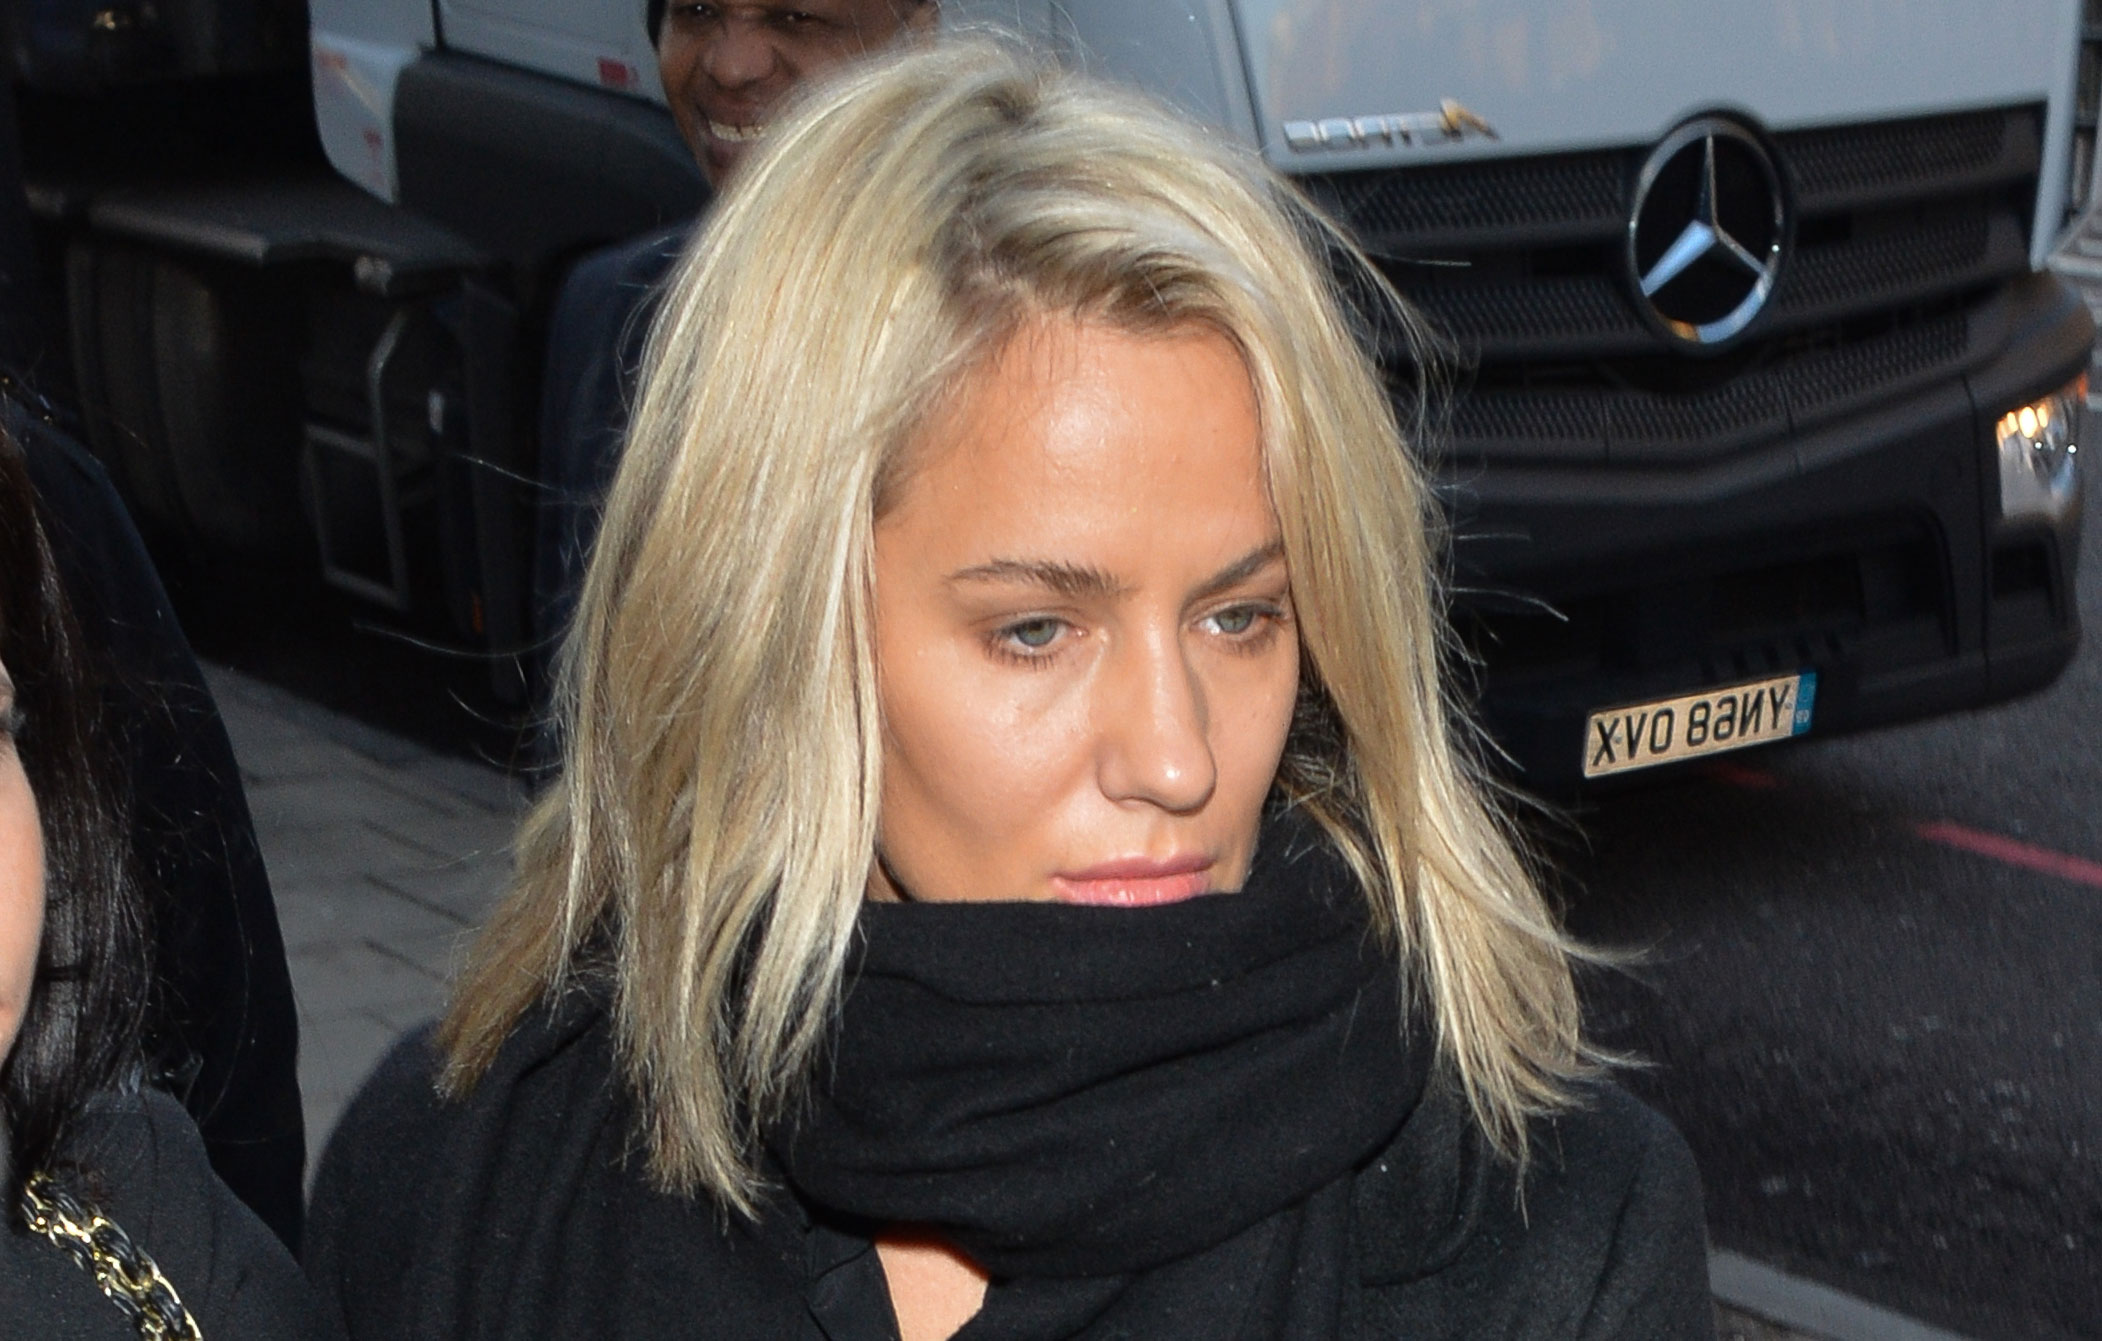 Caroline Flack flies to LA to 'find herself' ahead of her assault trial in March